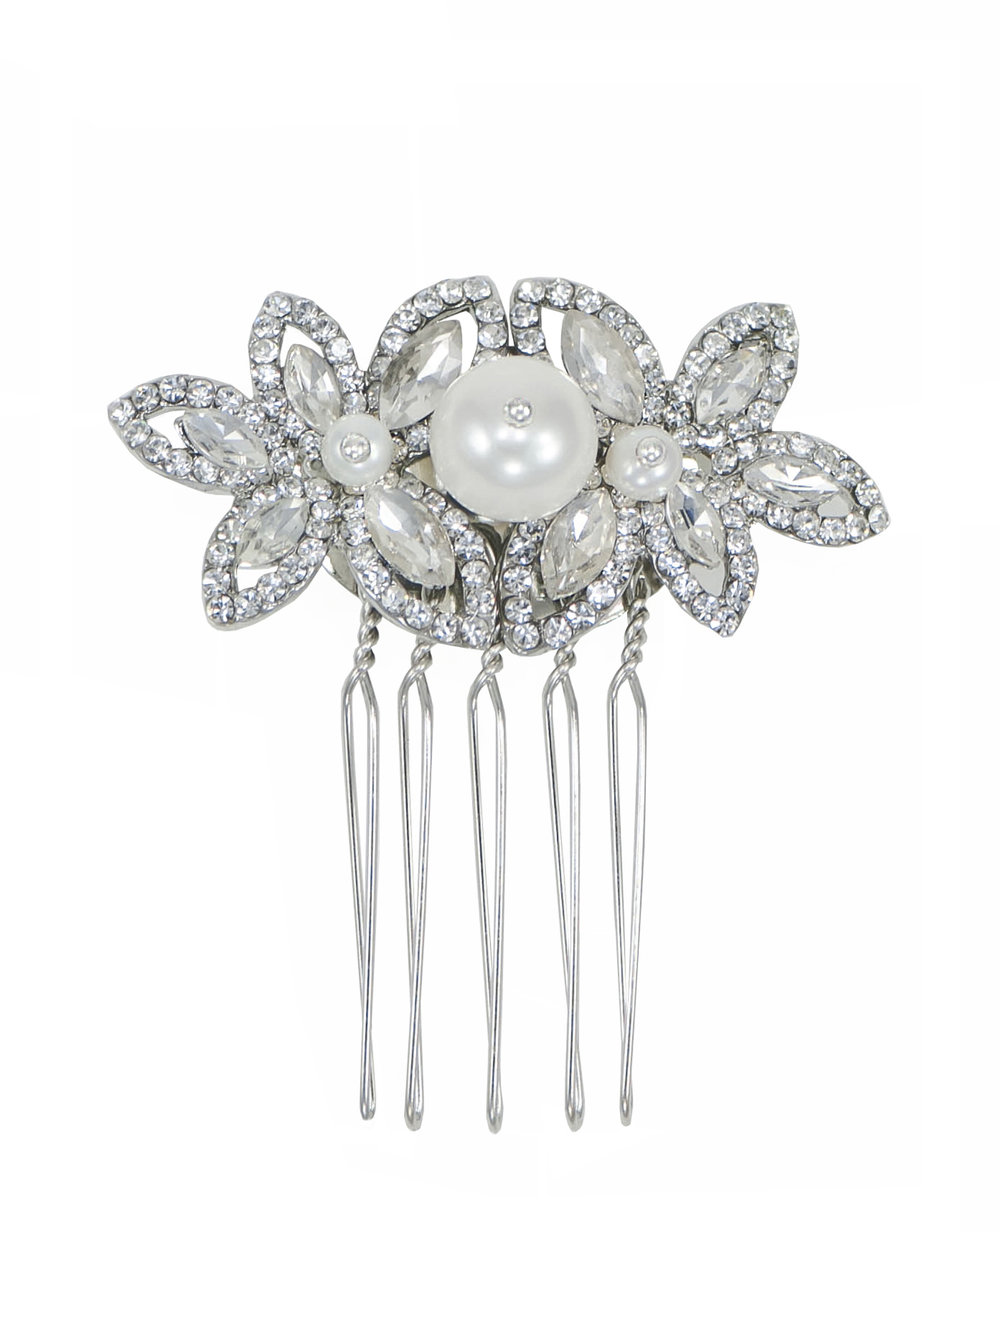 Rhinestone comb with beautiful freshwater pearls     Shop